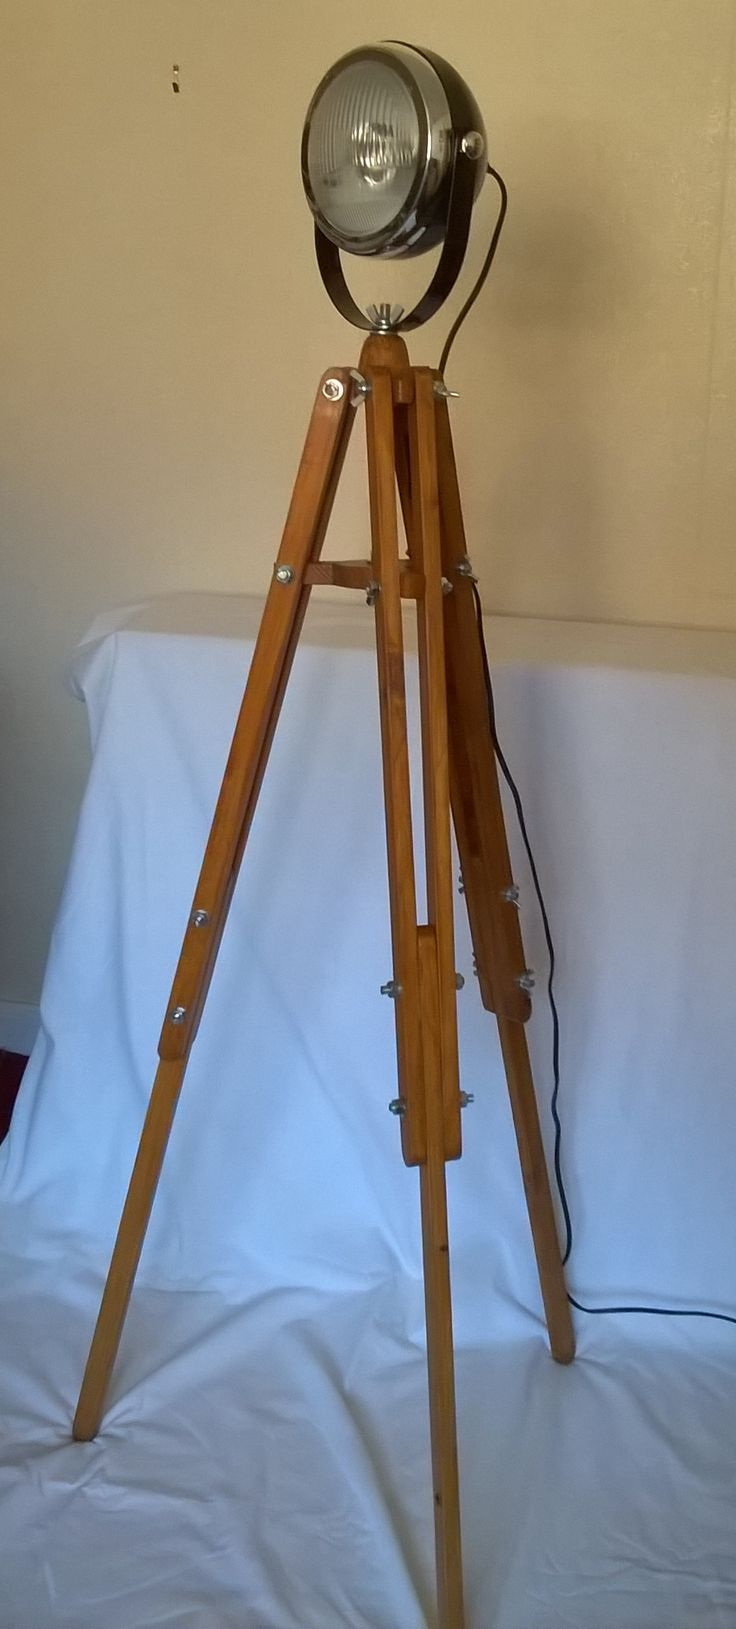 Pallet Wood Tripod with Vintage Style Headlight Lamp